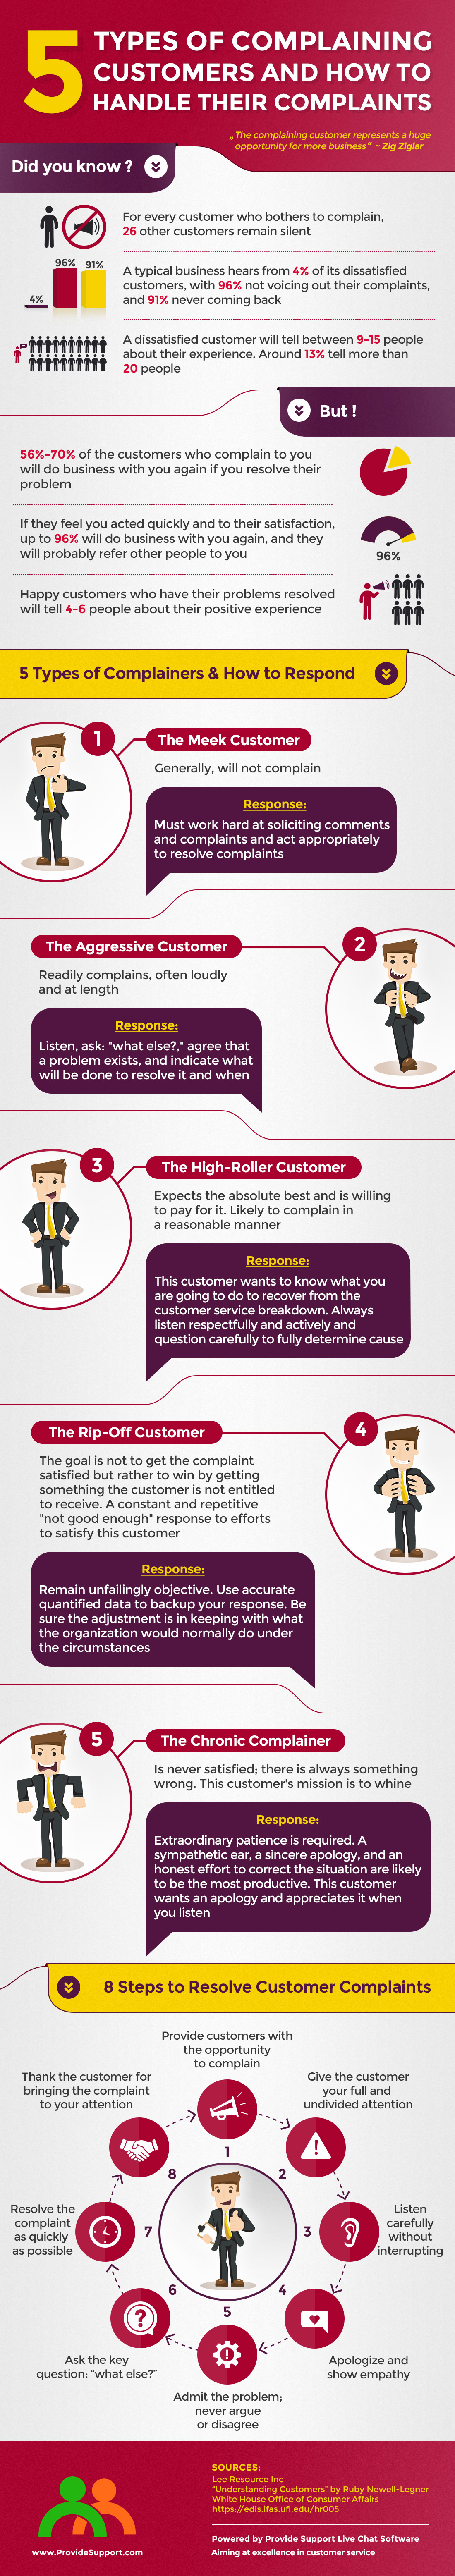 5 Types of Complaining Customers And How to Handle Their Complaints